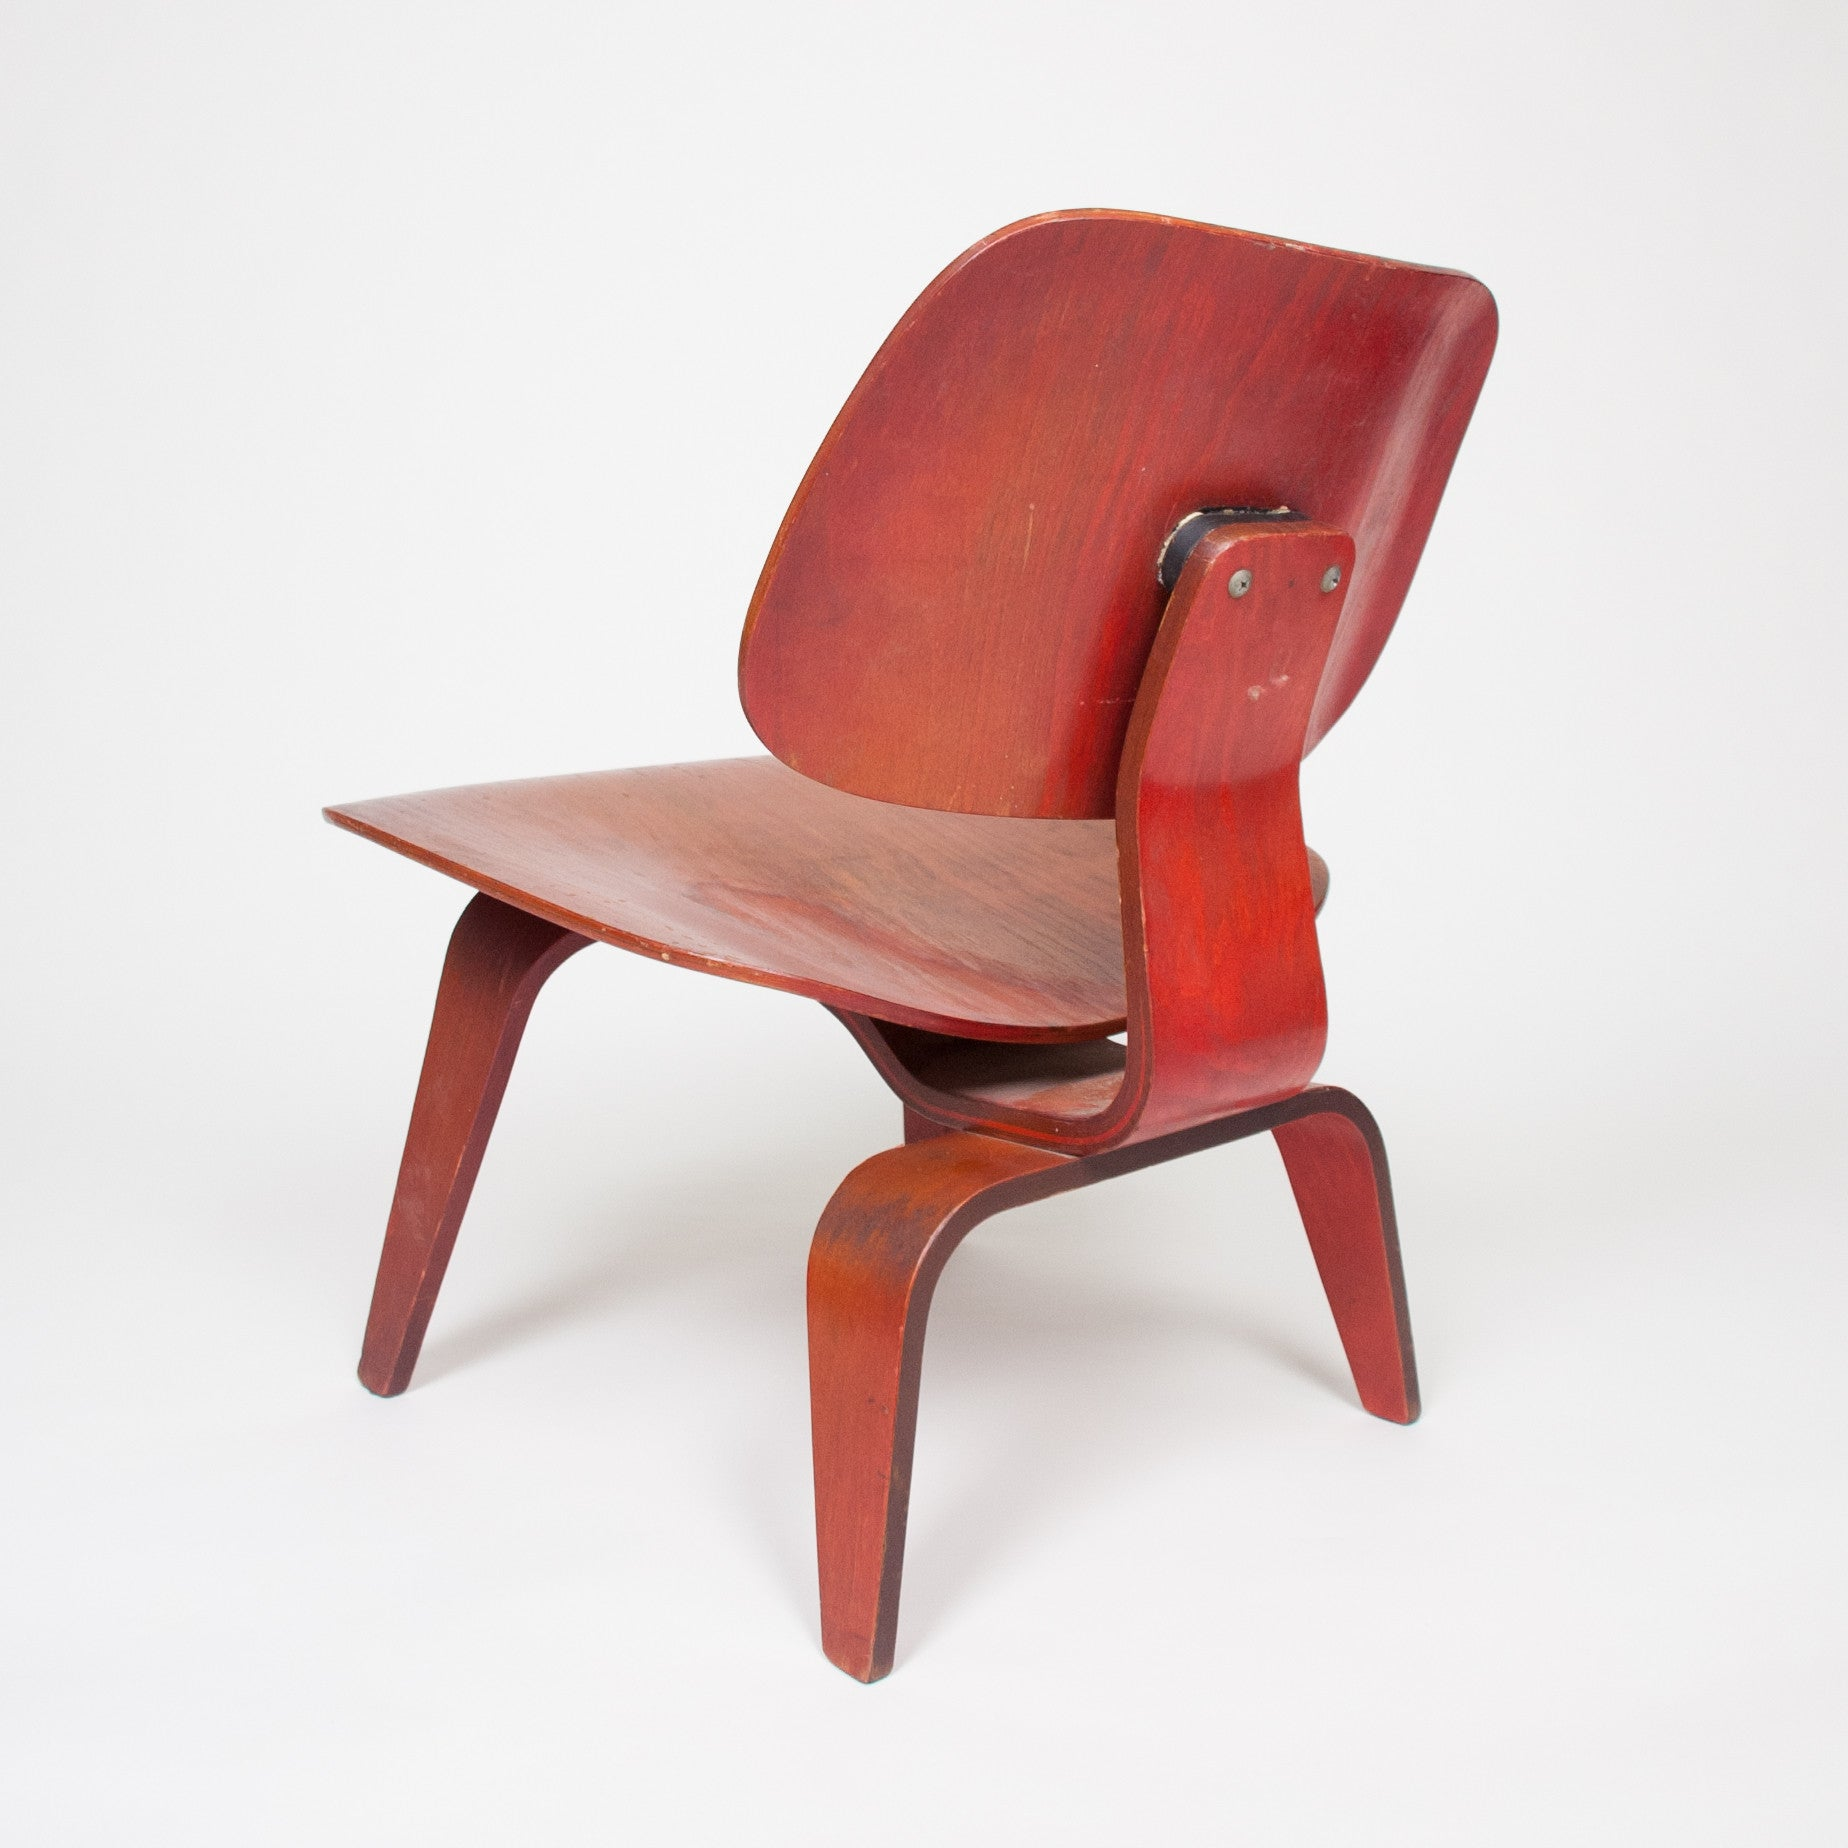 SOLD Eames Herman Miller Early 50's LCW Early Red Aniline, All Original Lounge Chair